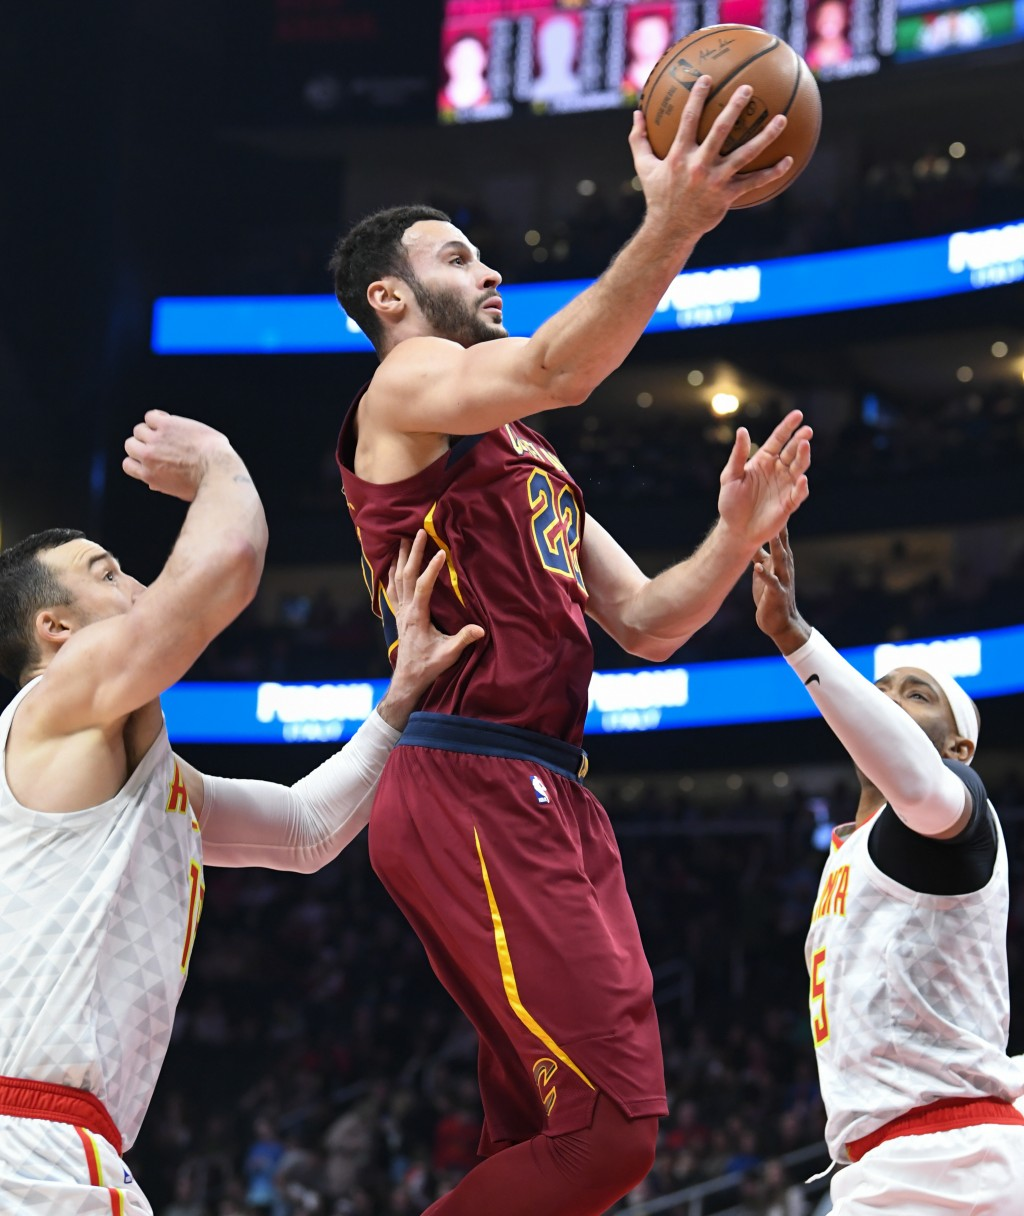 Cleveland Cavaliers forward Larry Nance Jr., center, shoots as Atlanta Hawks center Miles Plumlee, left, and forward Vince Carter, right, defend durin...